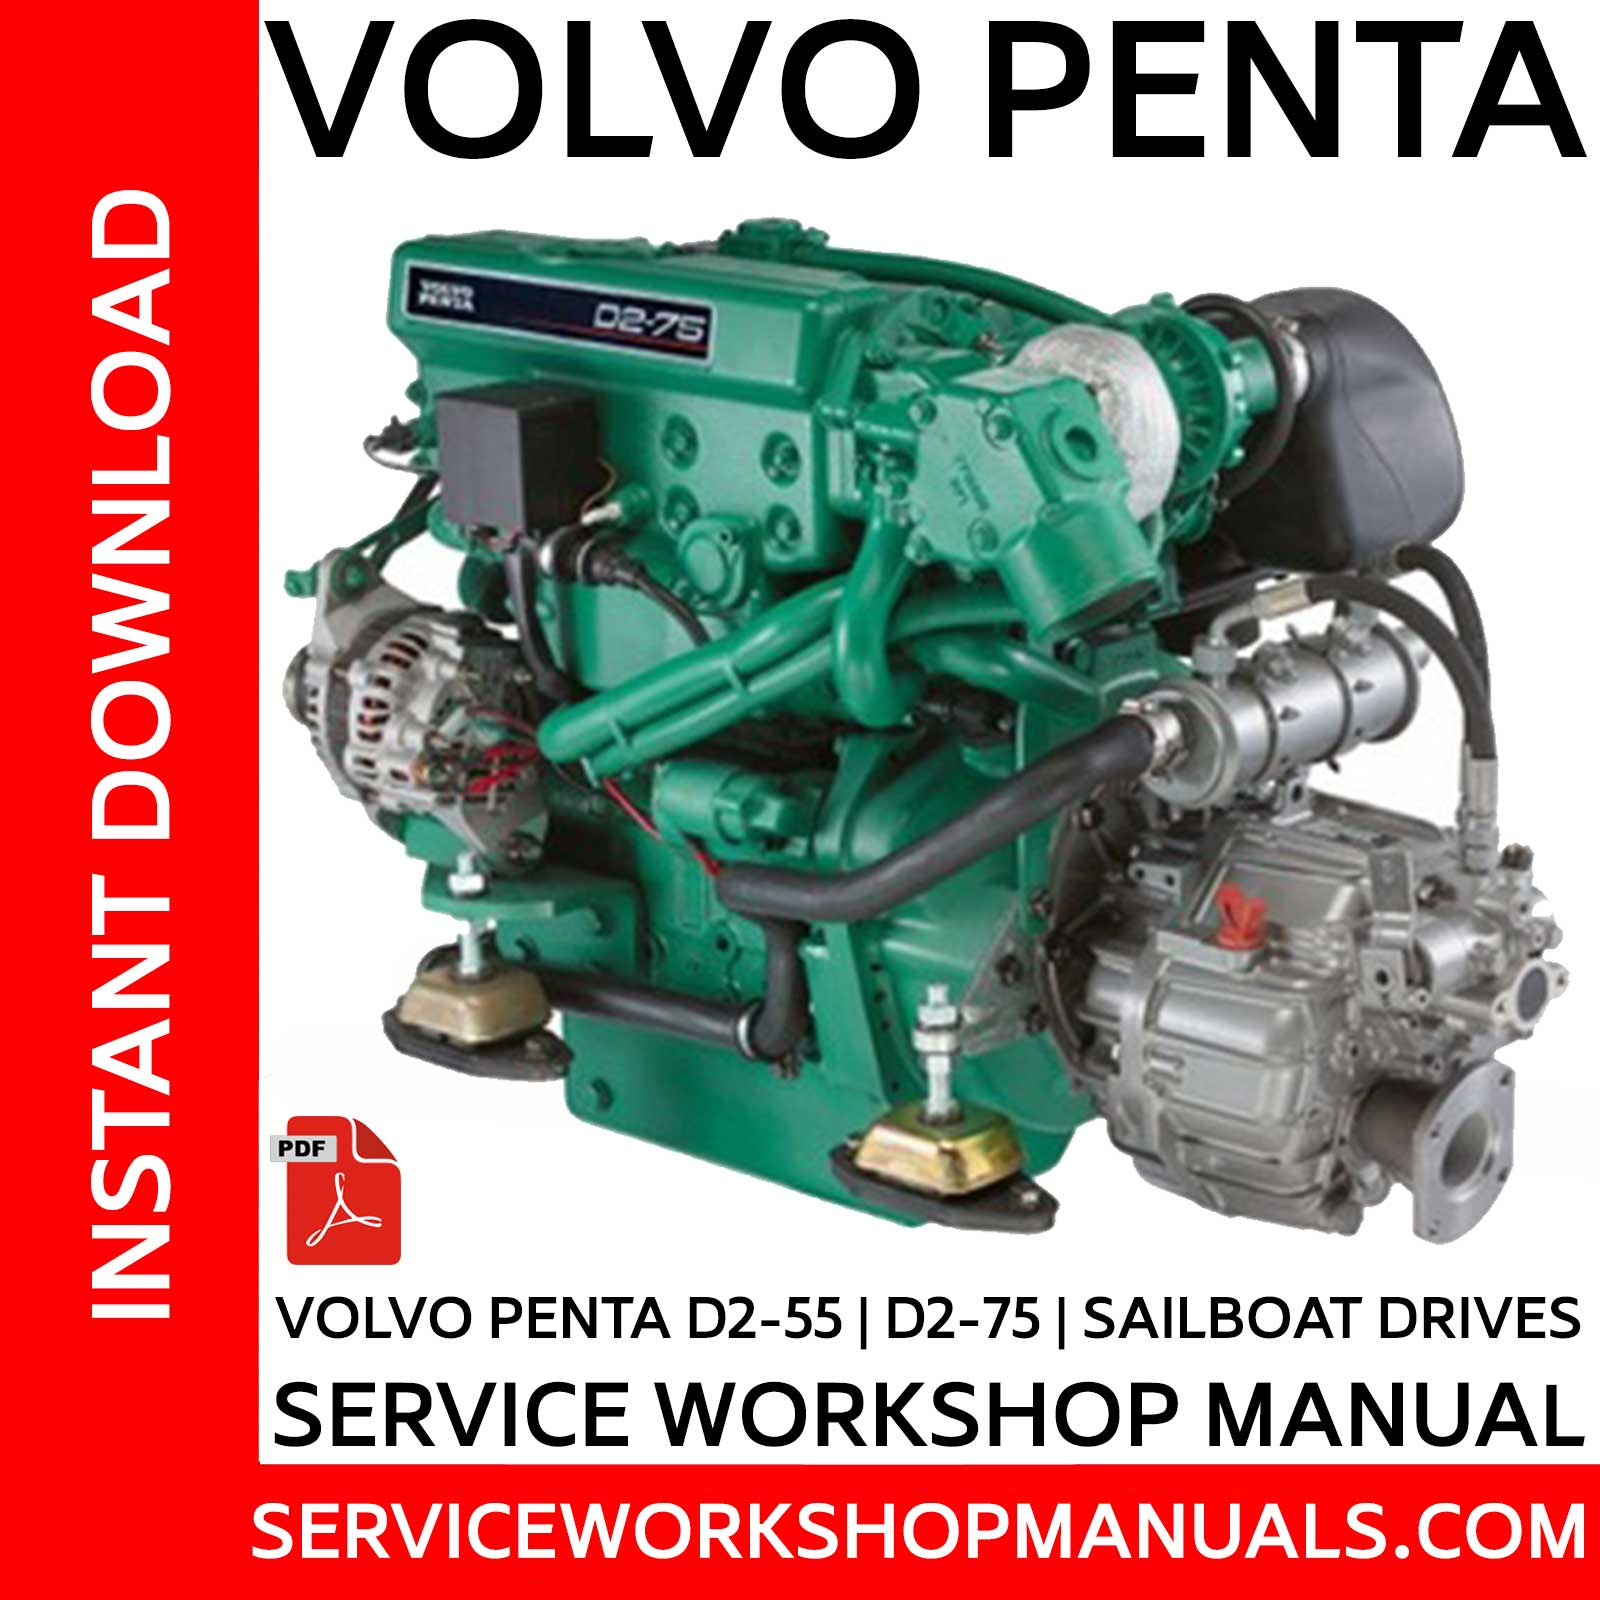 Volvo Penta D2-55 | D2-75 and Sailboat Drives Service Workshop Manual -  Service Workshop Manuals | Volvo Penta D2 55 Wiring Diagram |  | Service Workshop Manuals